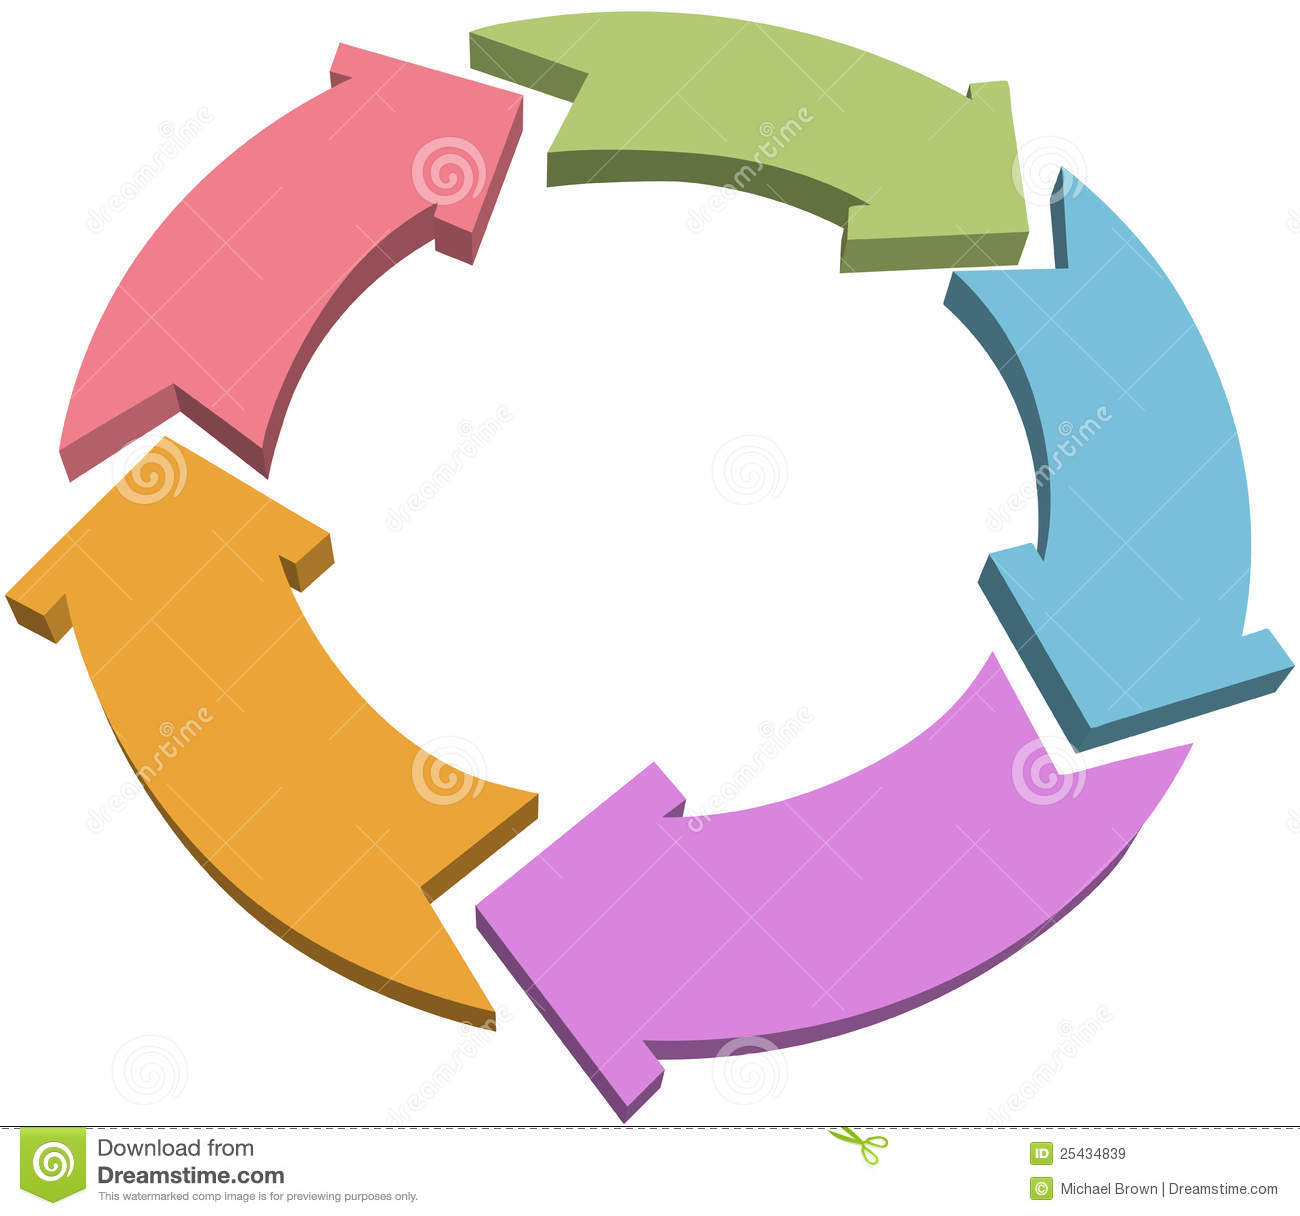 Process cycling arrow by arrow royalty free stock images image - Five Cycle Or Recycle 3d Color Arrows Royalty Free Stock Images